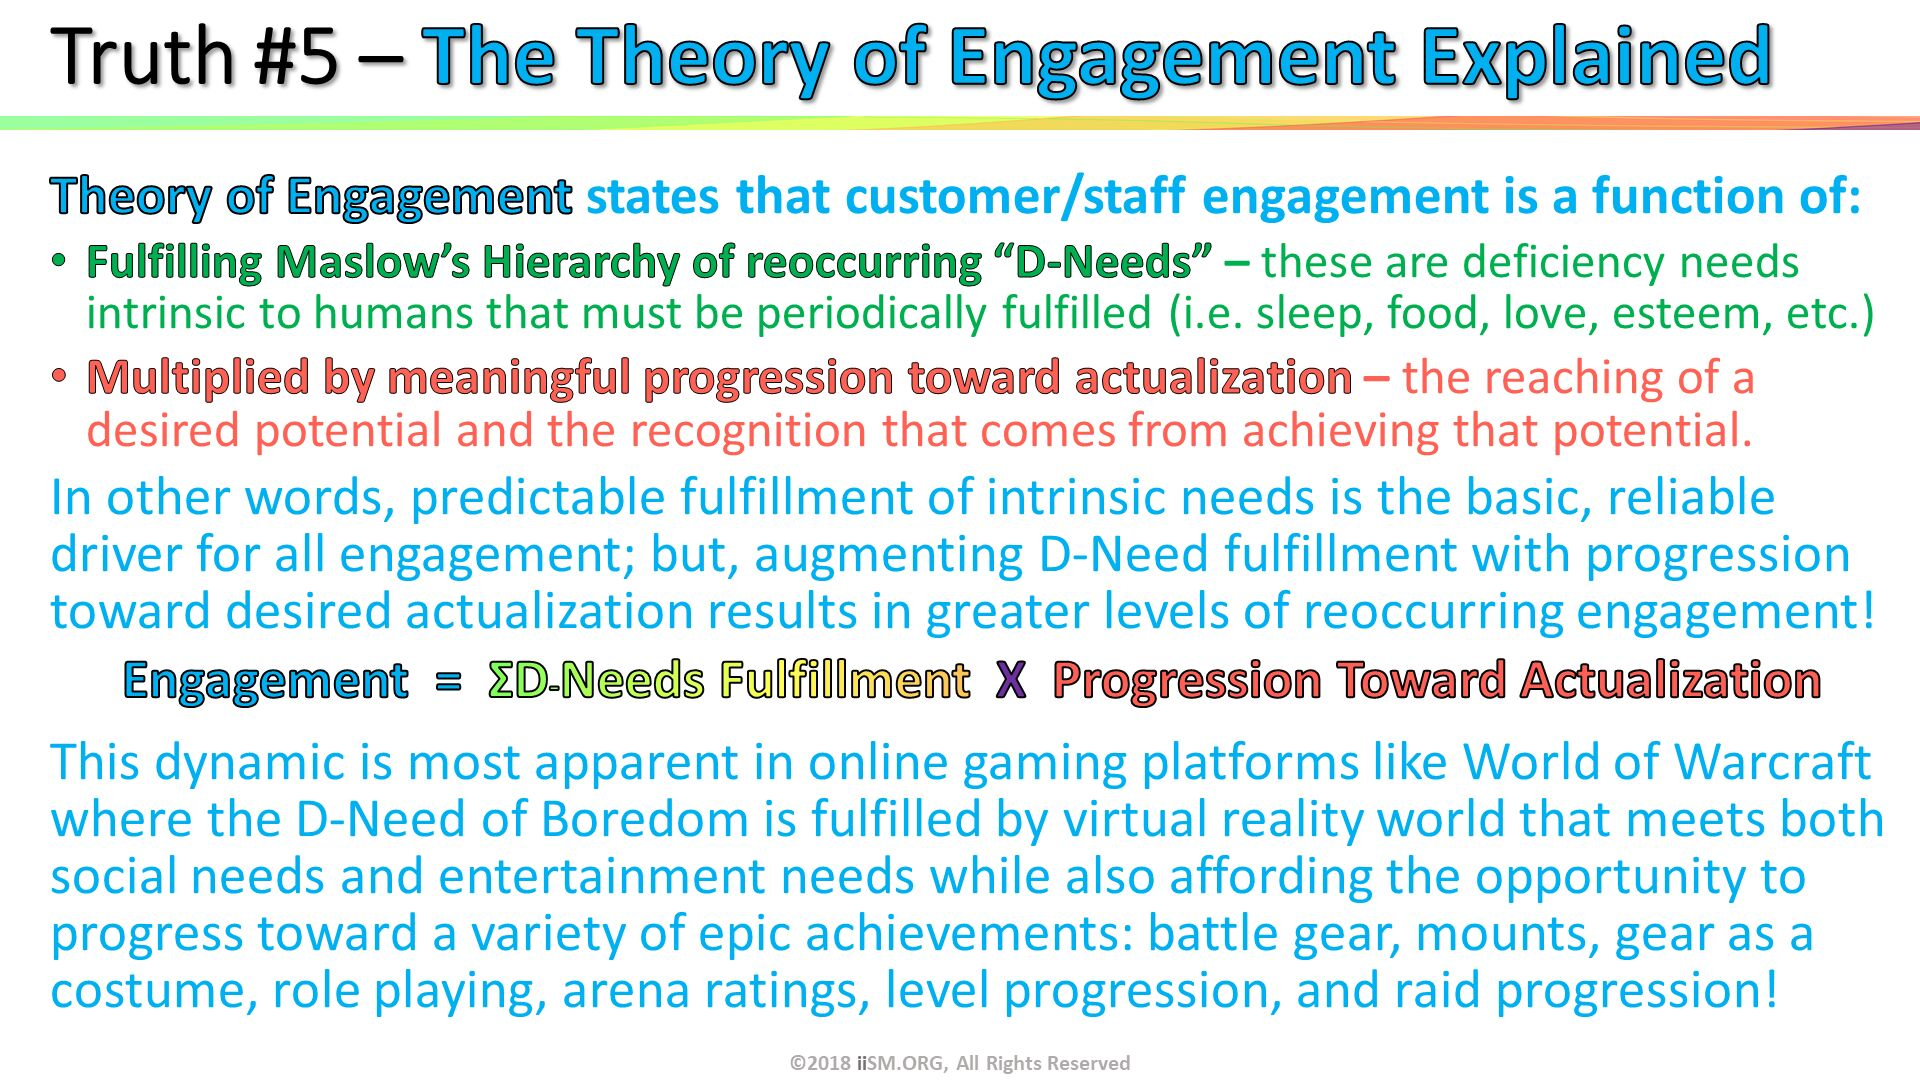 "Truth #5 – The Theory of Engagement Explained. ©2018 iiSM.ORG, All Rights Reserved.  . Theory of Engagement states that customer/staff engagement is a function of:  Fulfilling Maslow's Hierarchy of reoccurring ""D-Needs"" – these are deficiency needs intrinsic to humans that must be periodically fulfilled (i.e. sleep, food, love, esteem, etc.) Multiplied by meaningful progression toward actualization – the reaching of a desired potential and the recognition that comes from achieving that potential. In other words, predictable fulfillment of intrinsic needs is the basic, reliable driver for all engagement; but, augmenting D-Need fulfillment with progression toward desired actualization results in greater levels of reoccurring engagement! Engagement  =  ΣD-Needs Fulfillment  X  Progression Toward Actualization This dynamic is most apparent in online gaming platforms like World of Warcraft where the D-Need of Boredom is fulfilled by virtual reality world that meets both social needs and entertainment needs while also affording the opportunity to progress toward a variety of epic achievements: battle gear, mounts, gear as a costume, role playing, arena ratings, level progression, and raid progression! ."